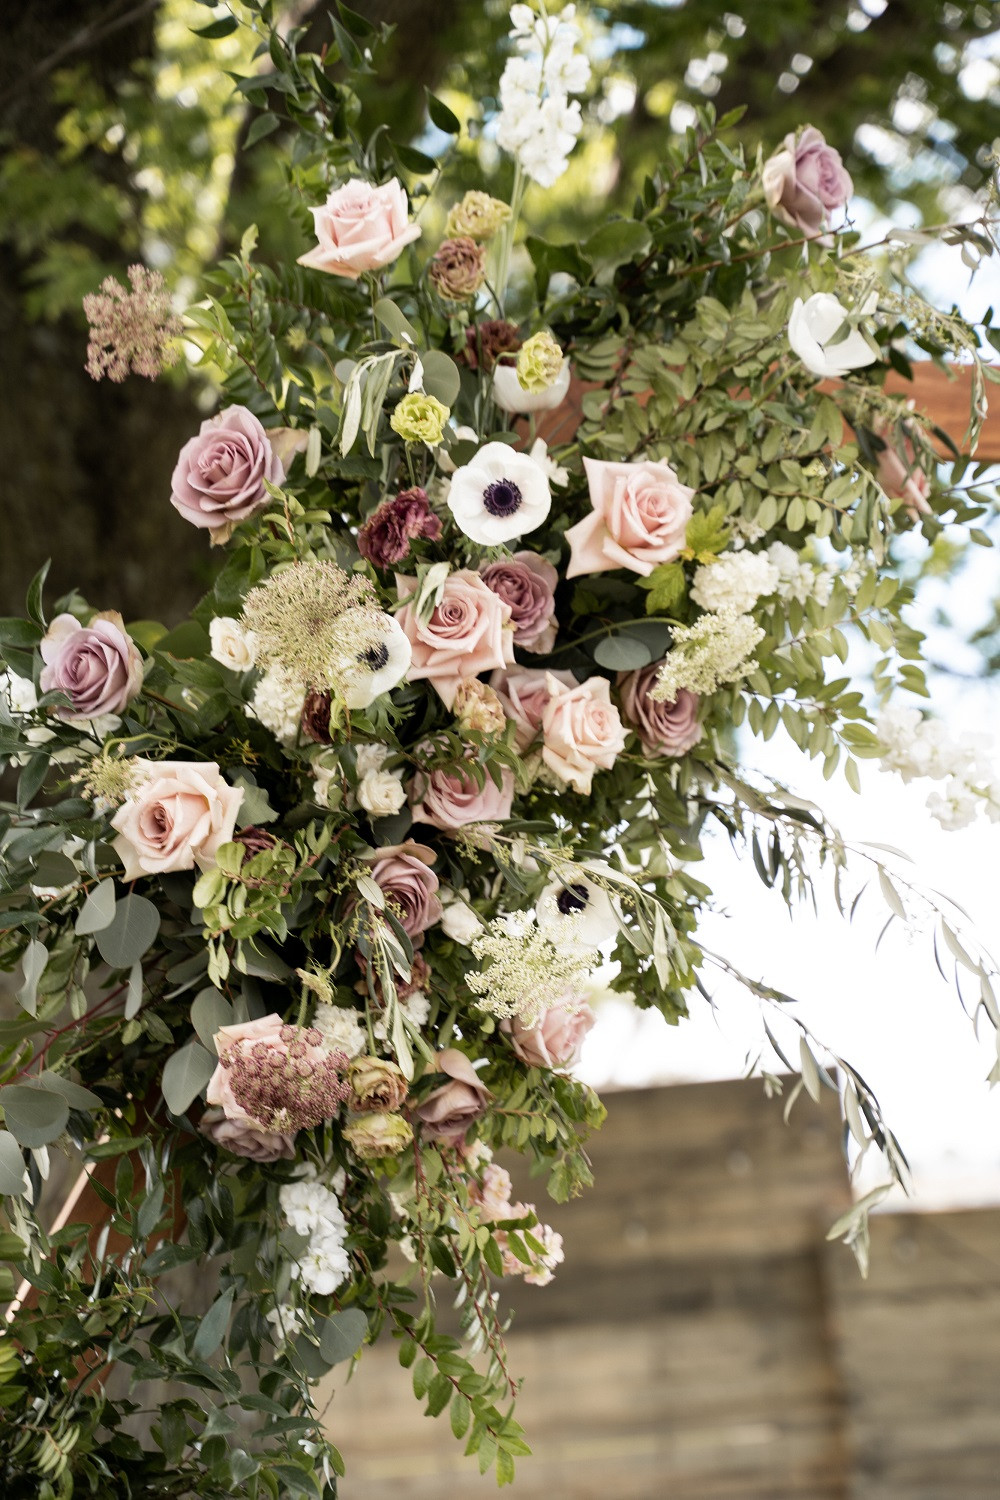 detail of wedding arch flowers in mauve and blush by Studio Bloom Iowa with roses, anemone, and lisianthus